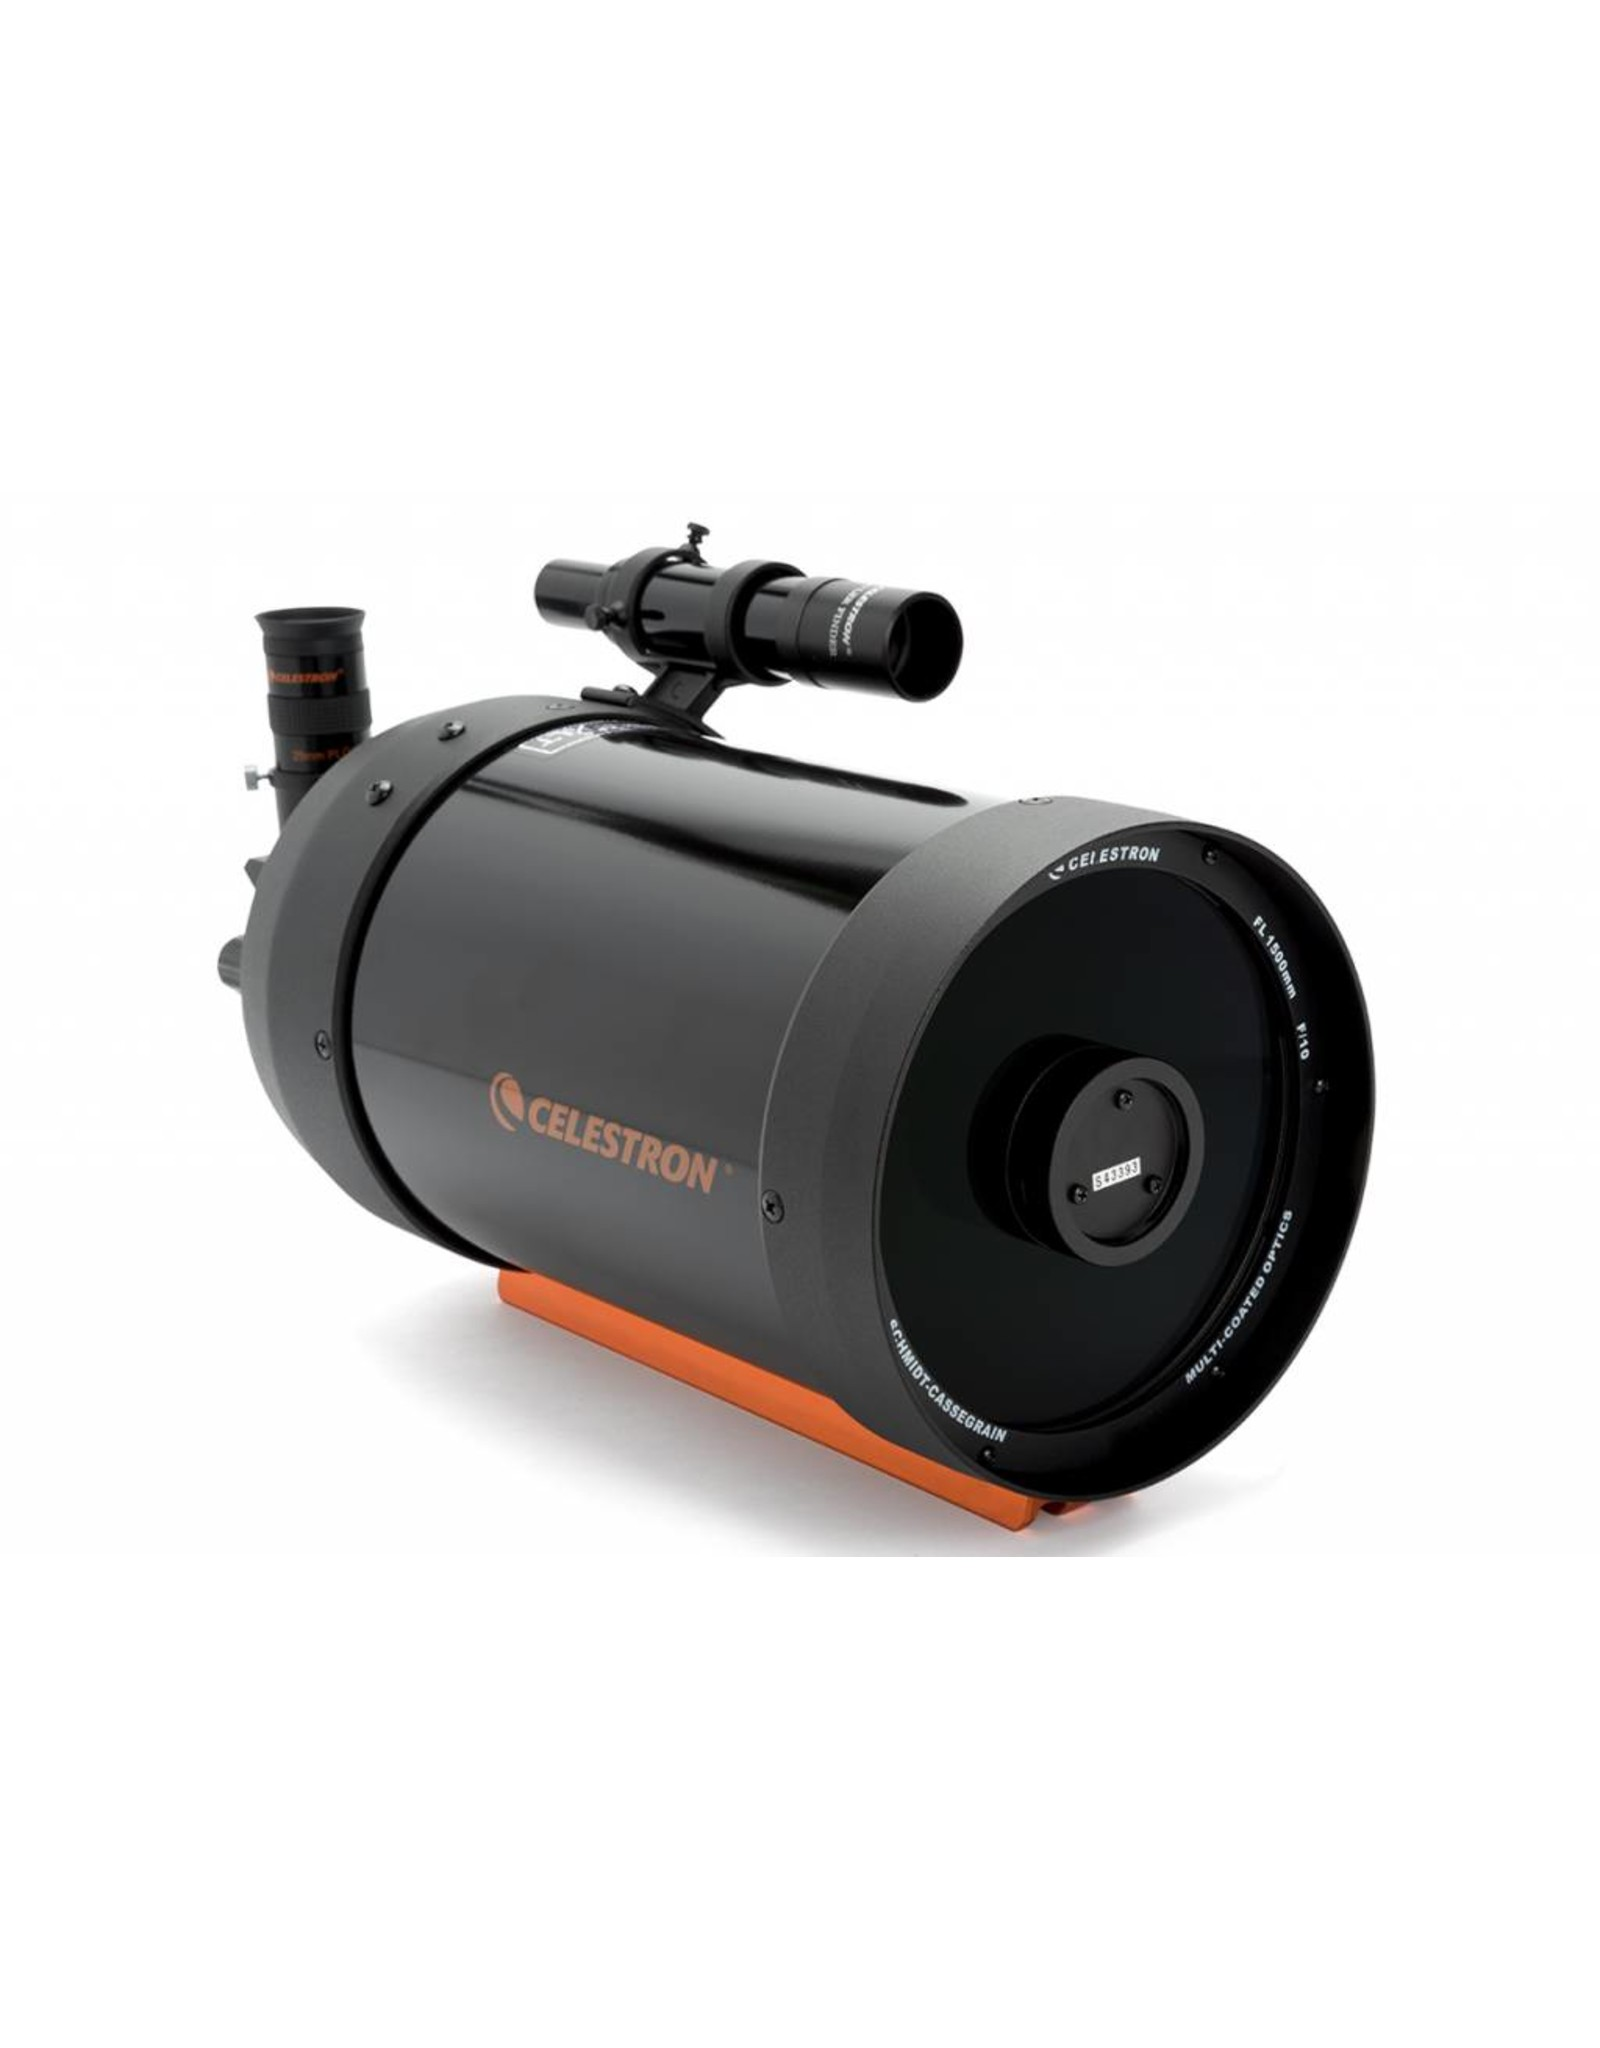 Celestron Celestron C6-A-XLT (CG-5) Optical Tube Assembly